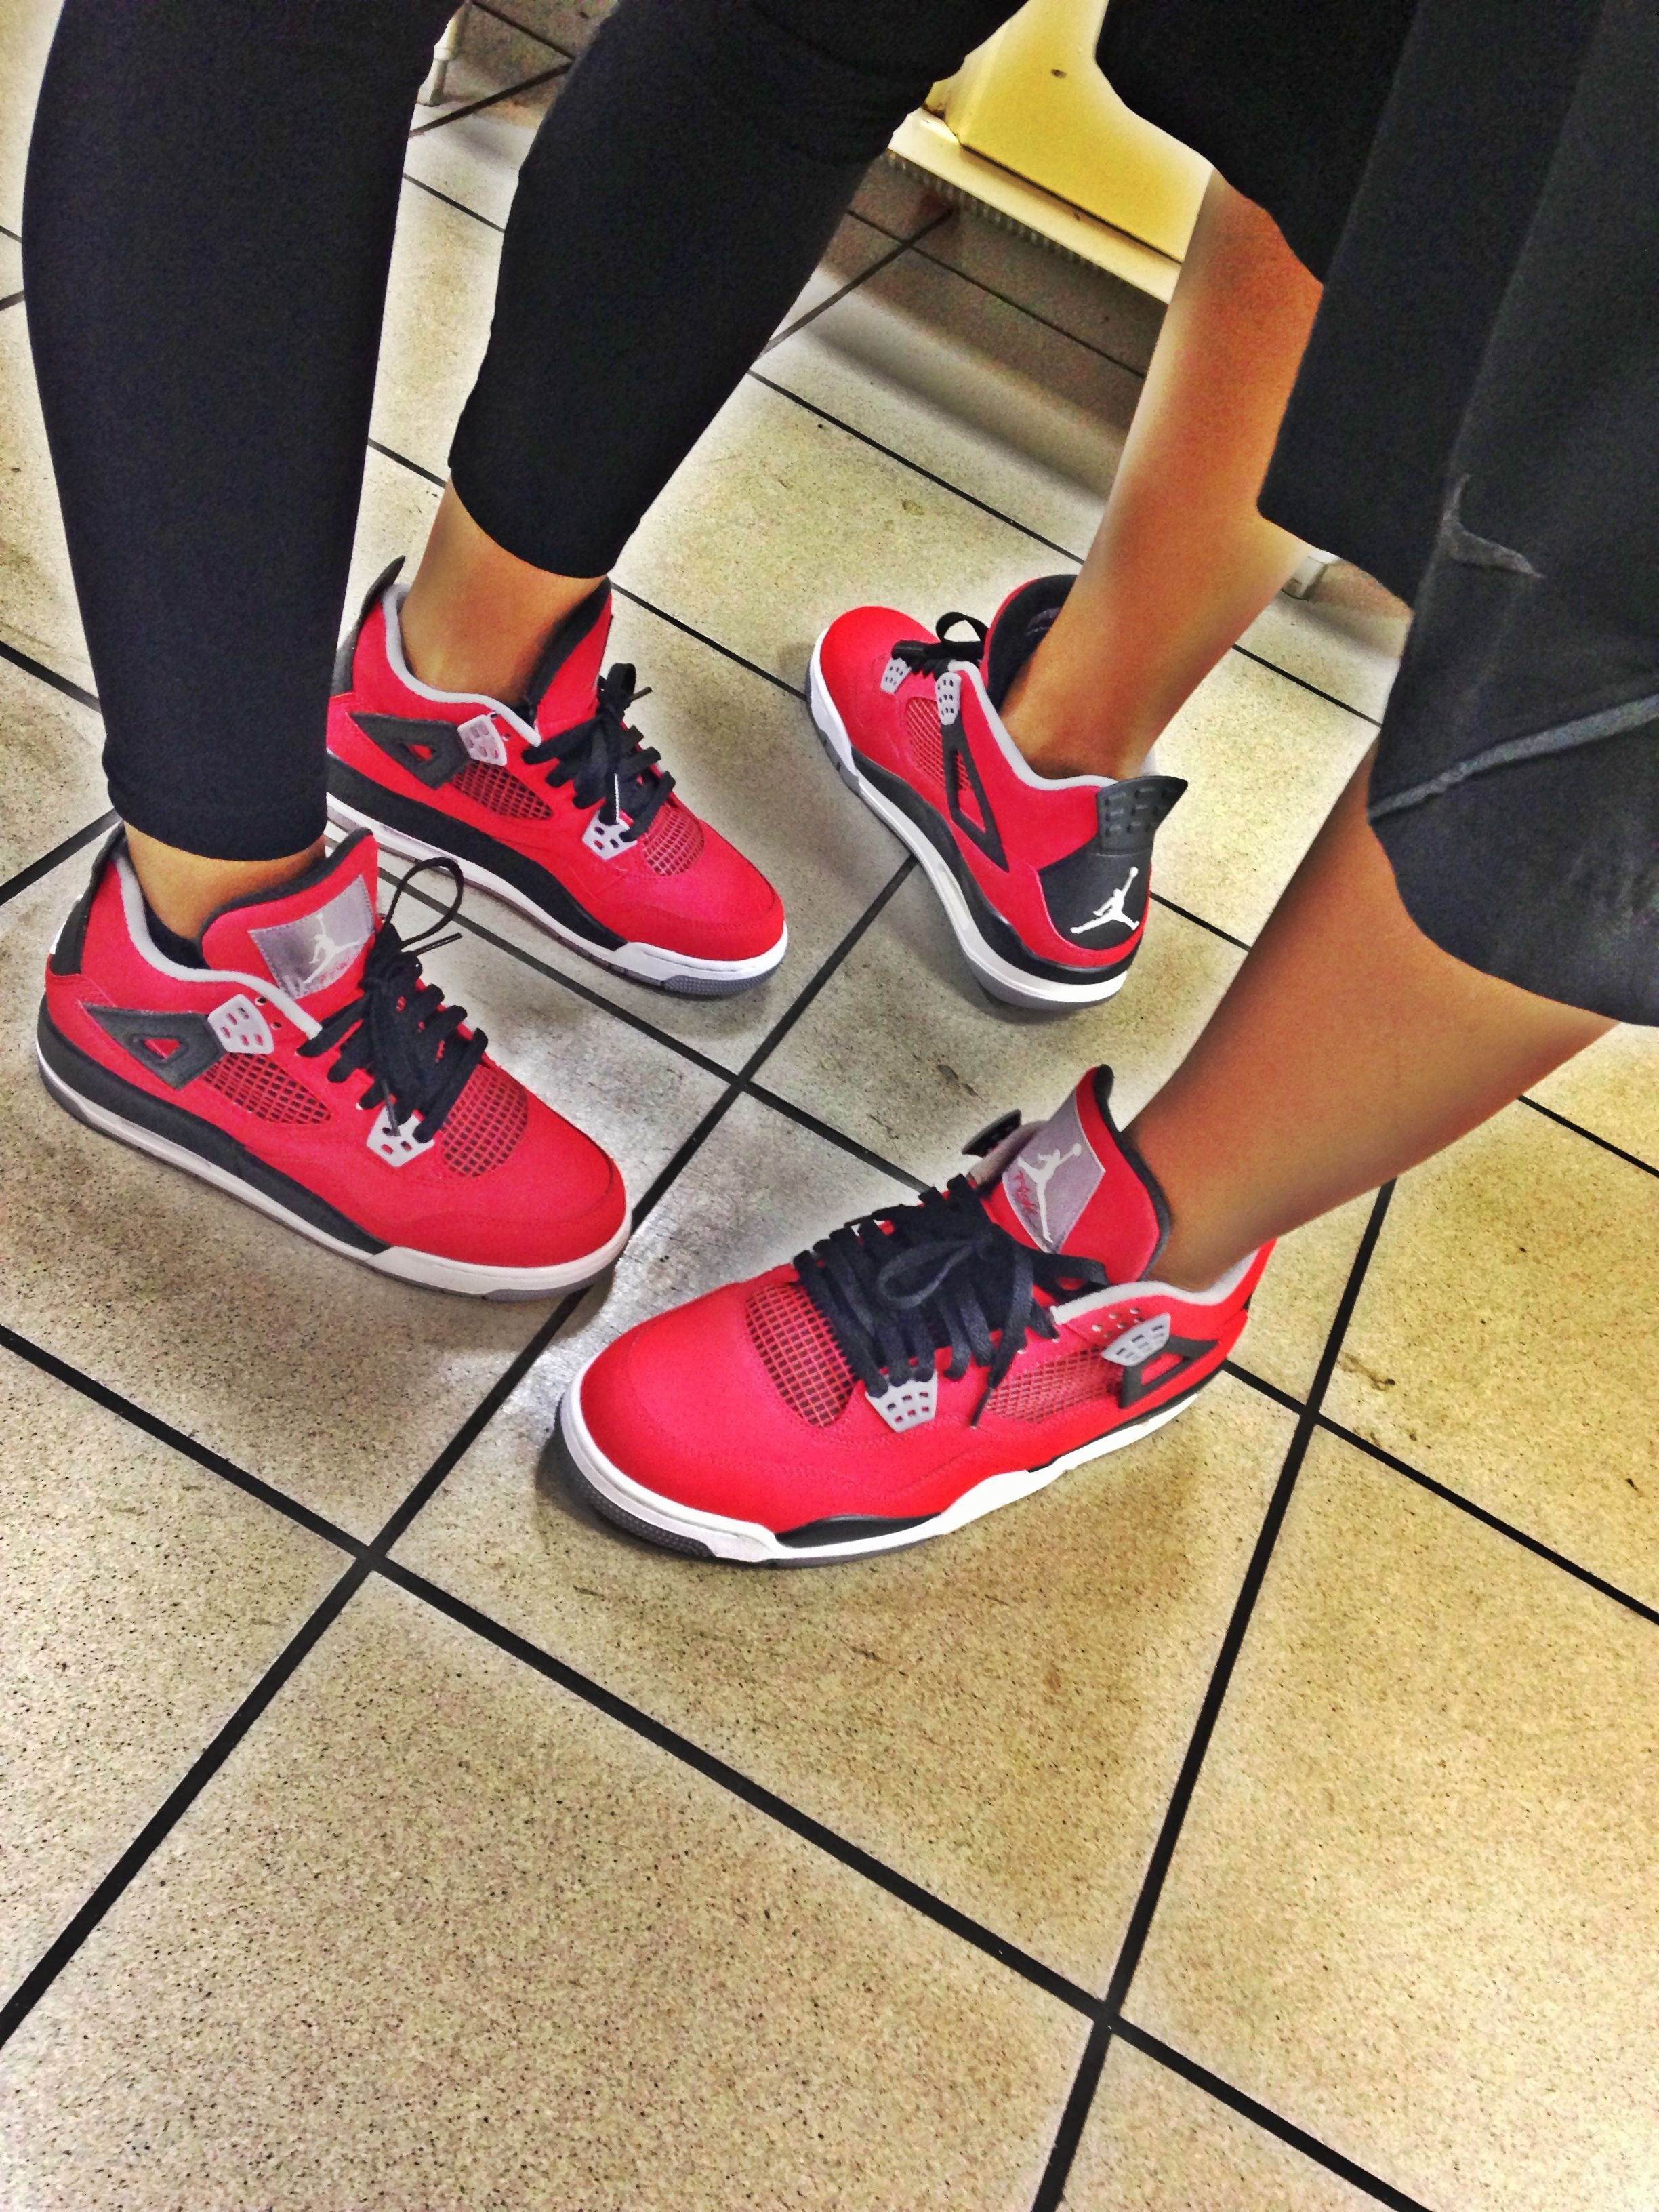 Couples With Matching Sneakers